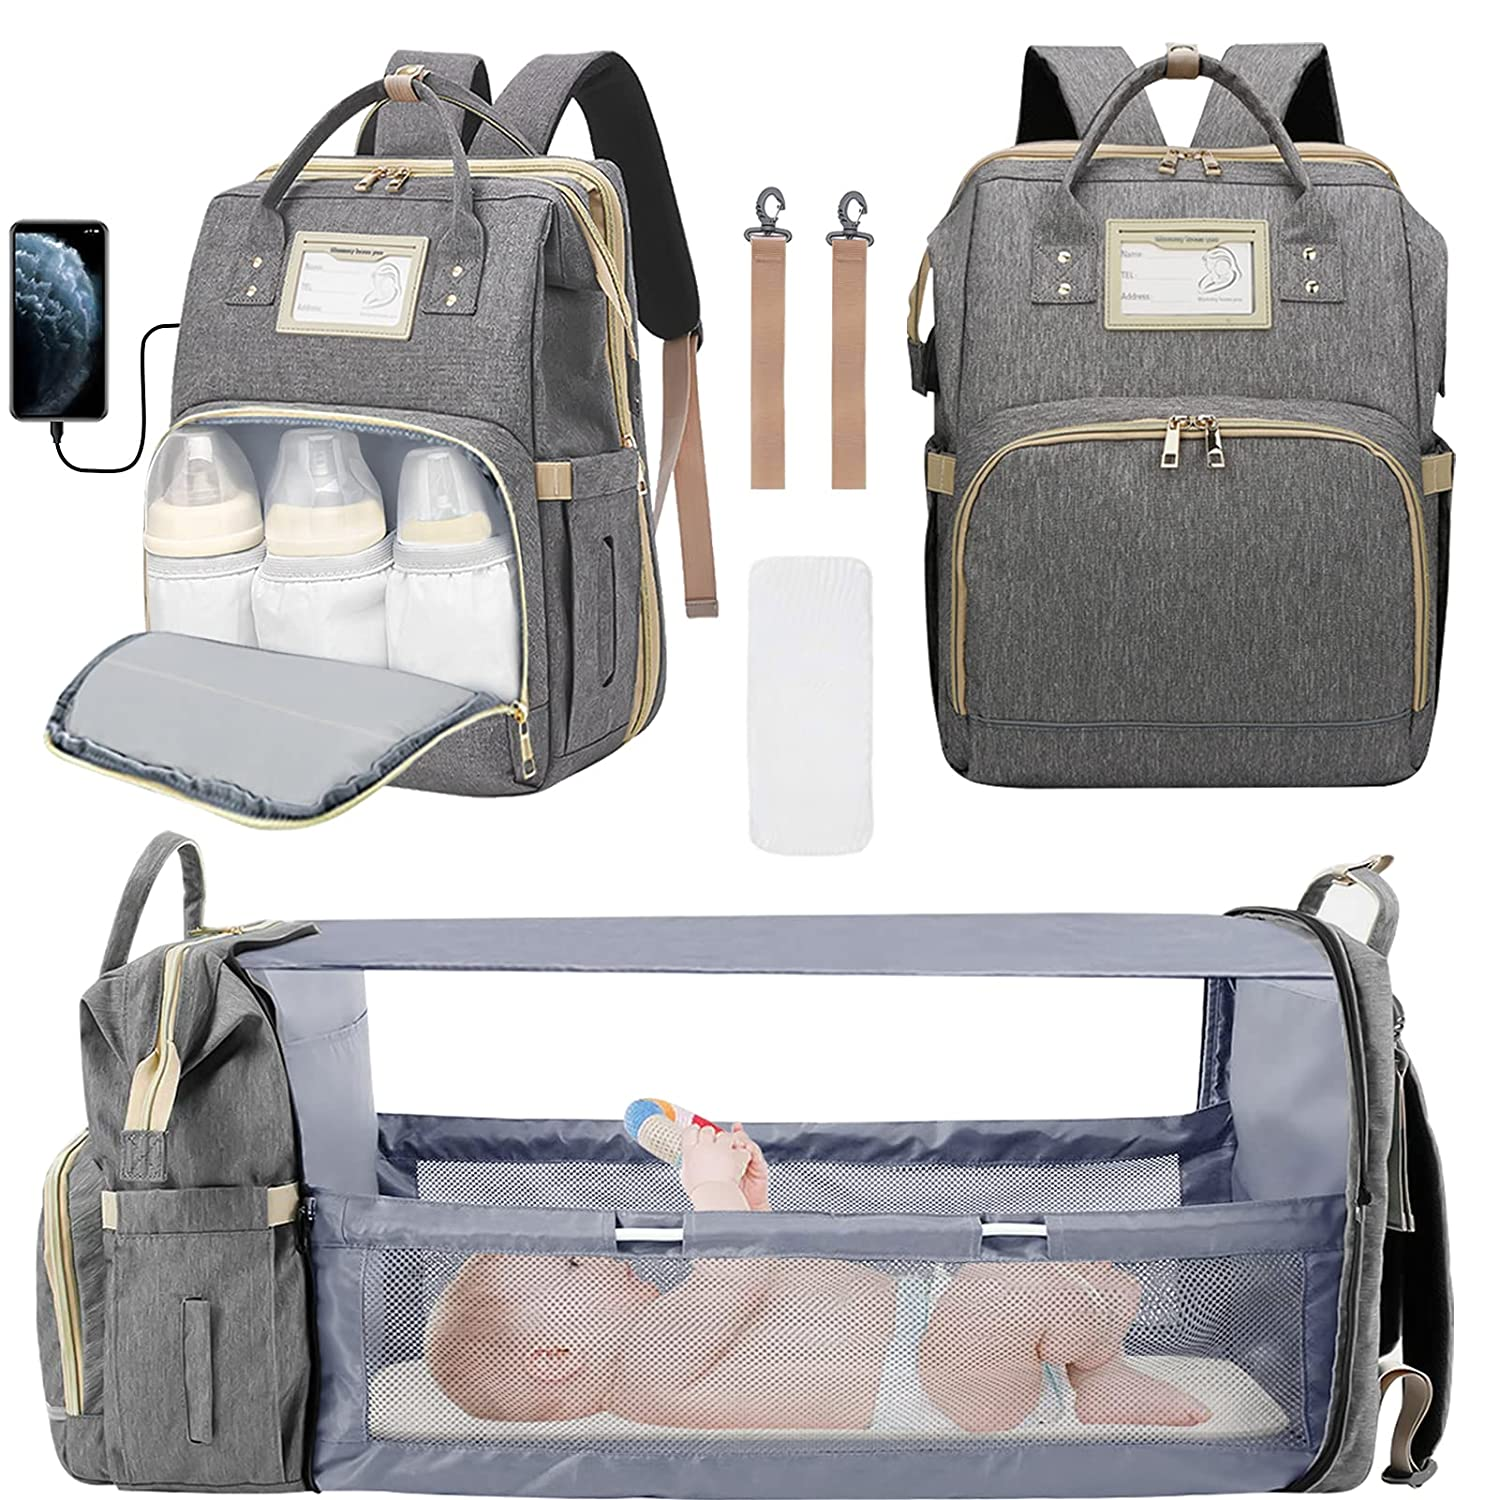 3 in 1 Diaper Bag Backpack, Foldable Travel Baby Bag with Changing Station, Portable Mommy Backpack with USB Charging Port Baby Backpack Organizer with Stroller Straps, Large Capacity Waterproof, Gray